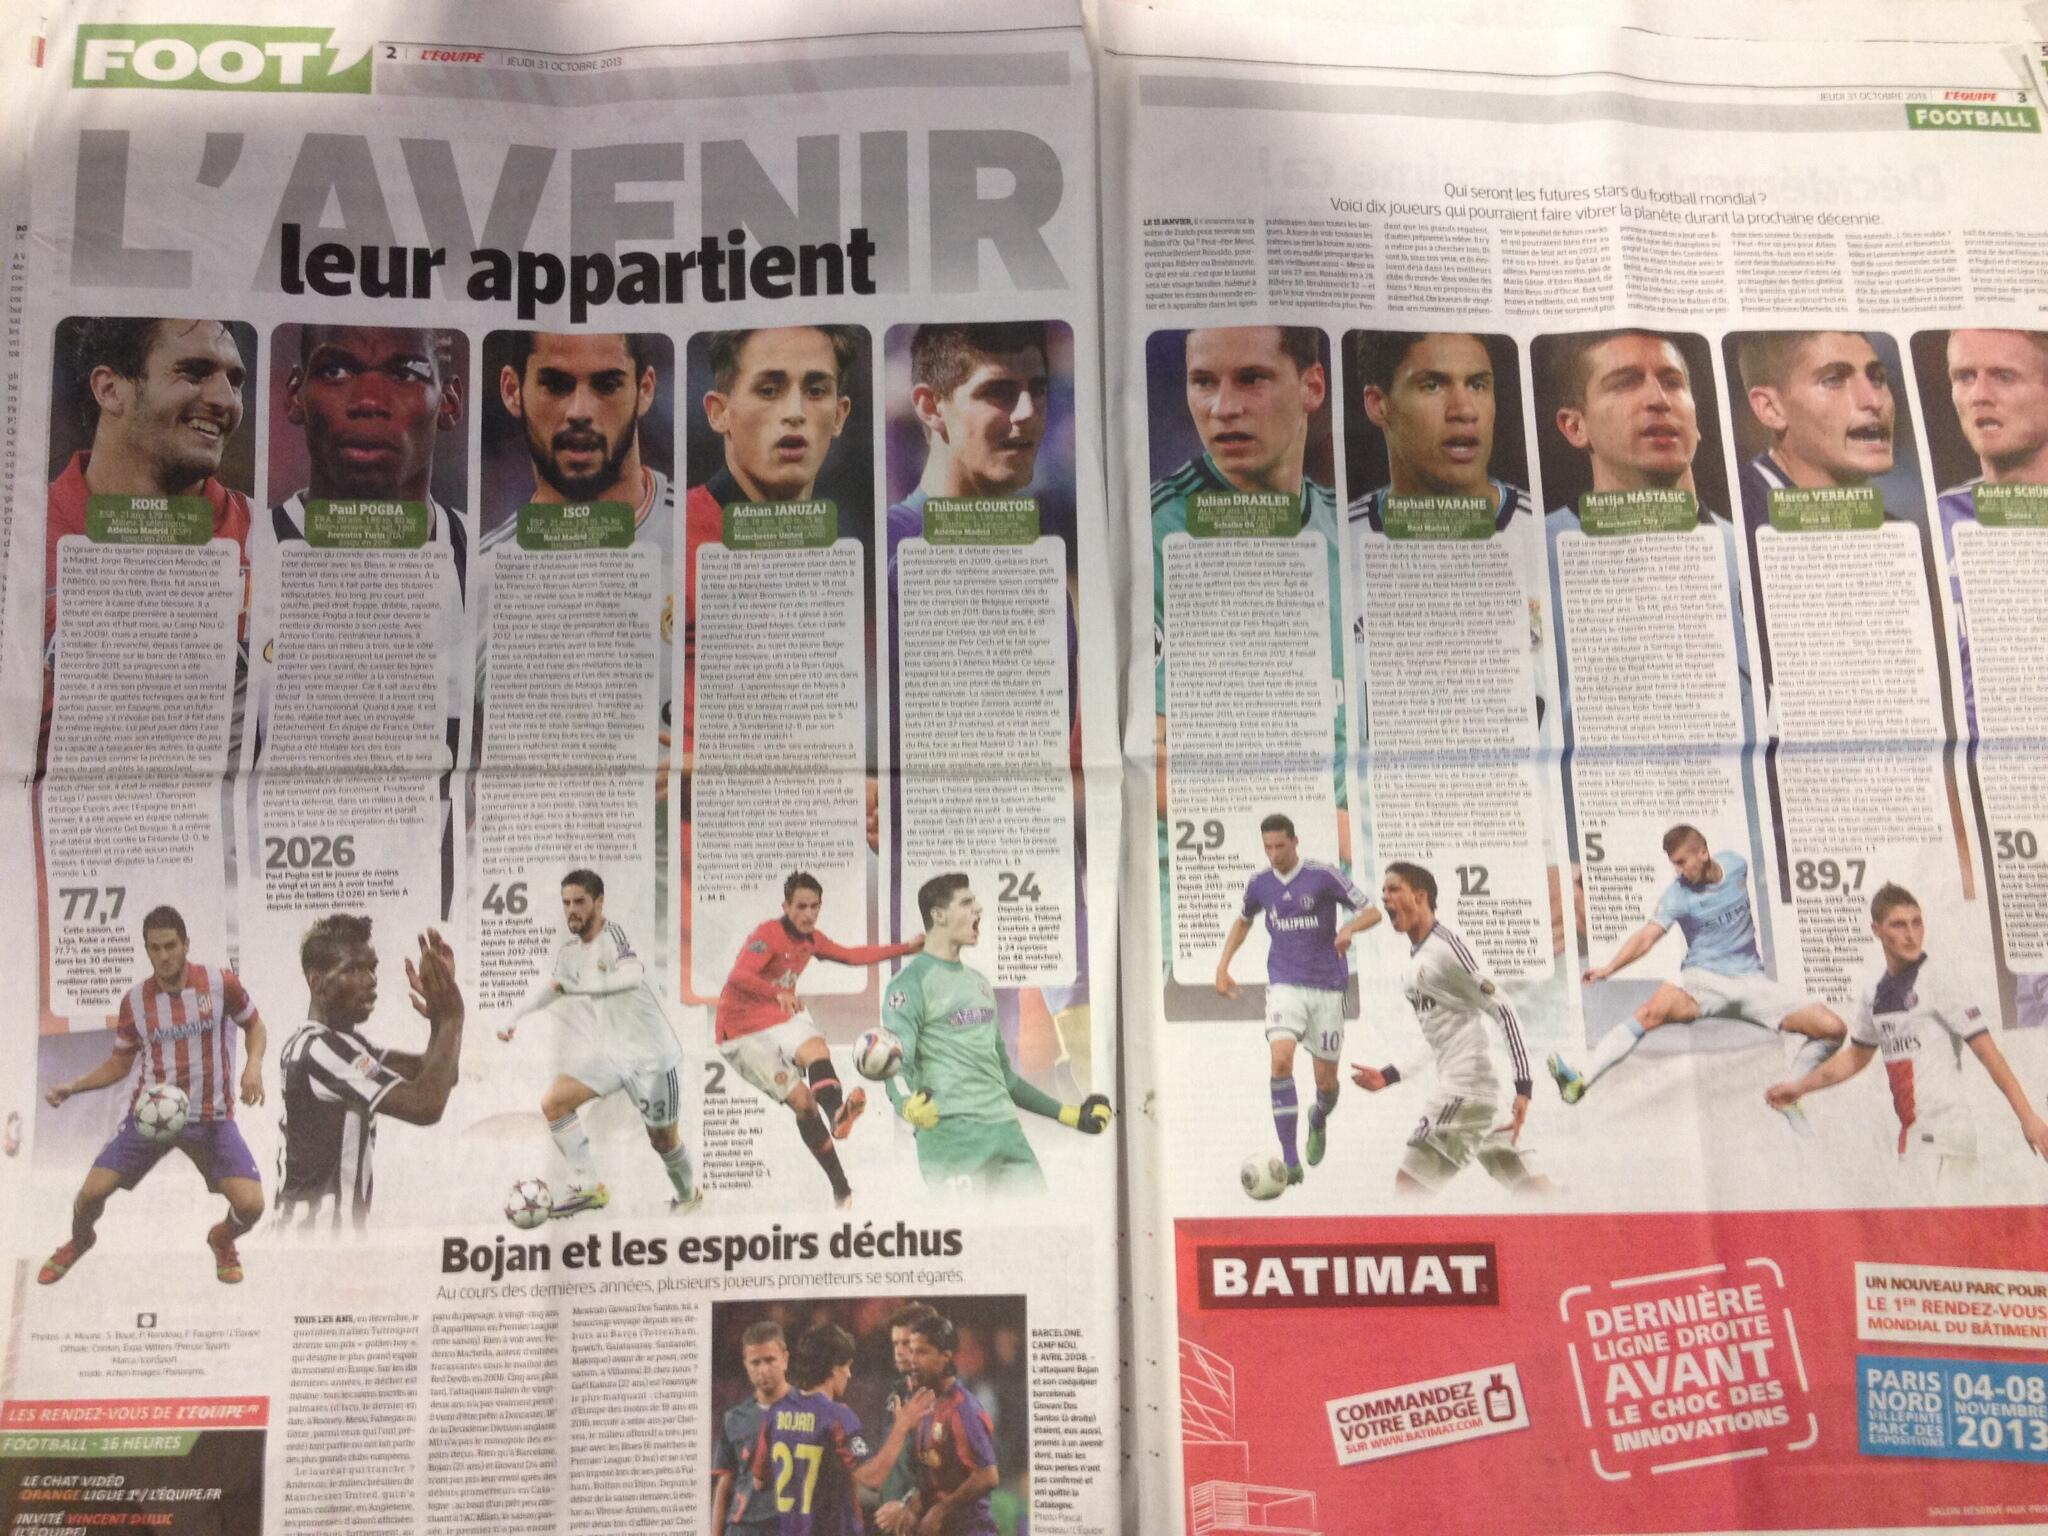 LEquipes 10 stars of tomorrow, includes Man Uniteds Januzaj, Citys Nastasic and Chelseas Courtois & Schurrle